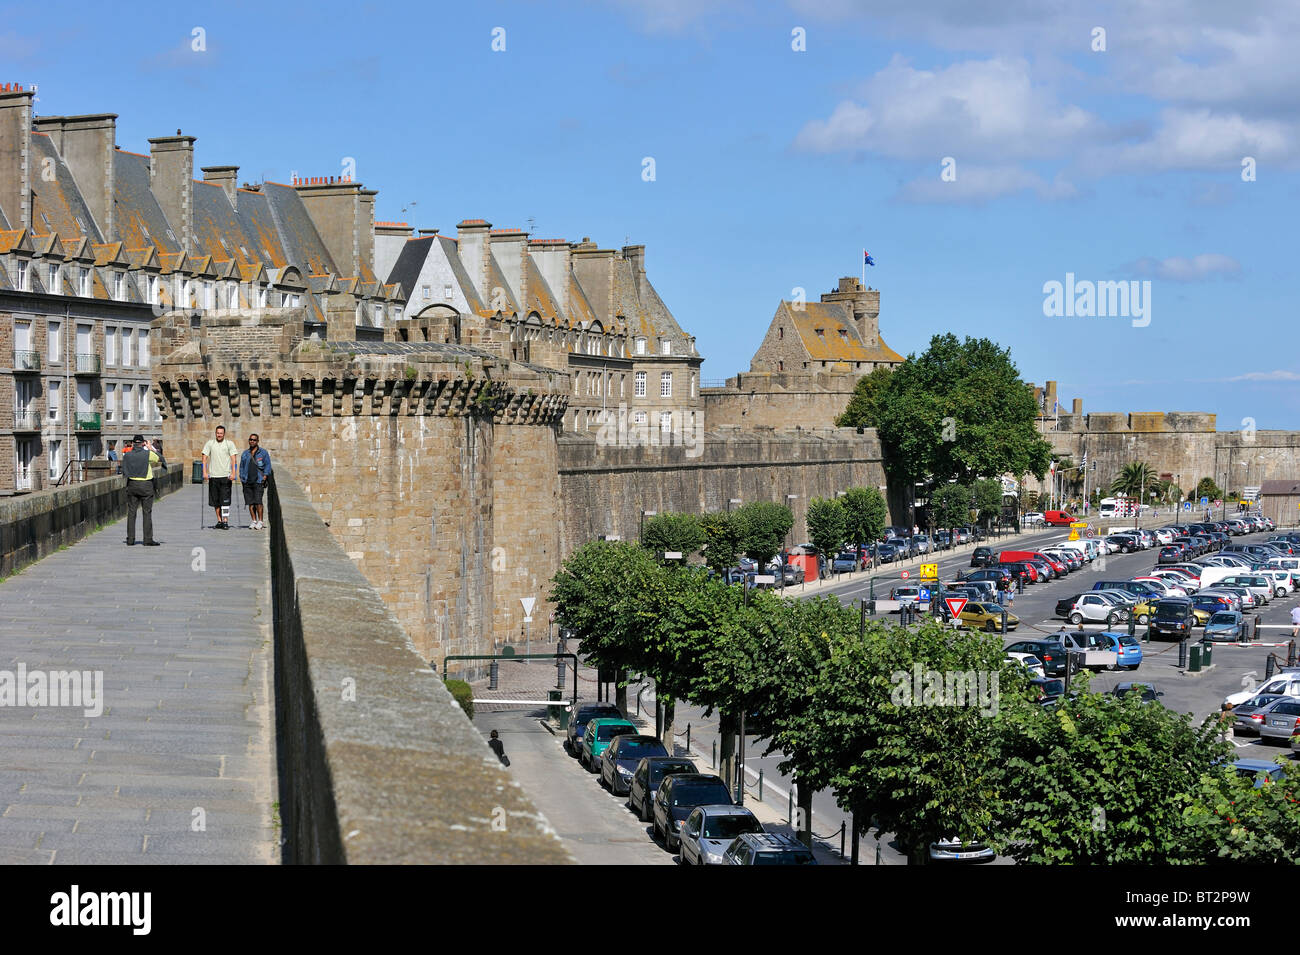 Tourists walking on rampart at Saint-Malo, Brittany, France - Stock Image